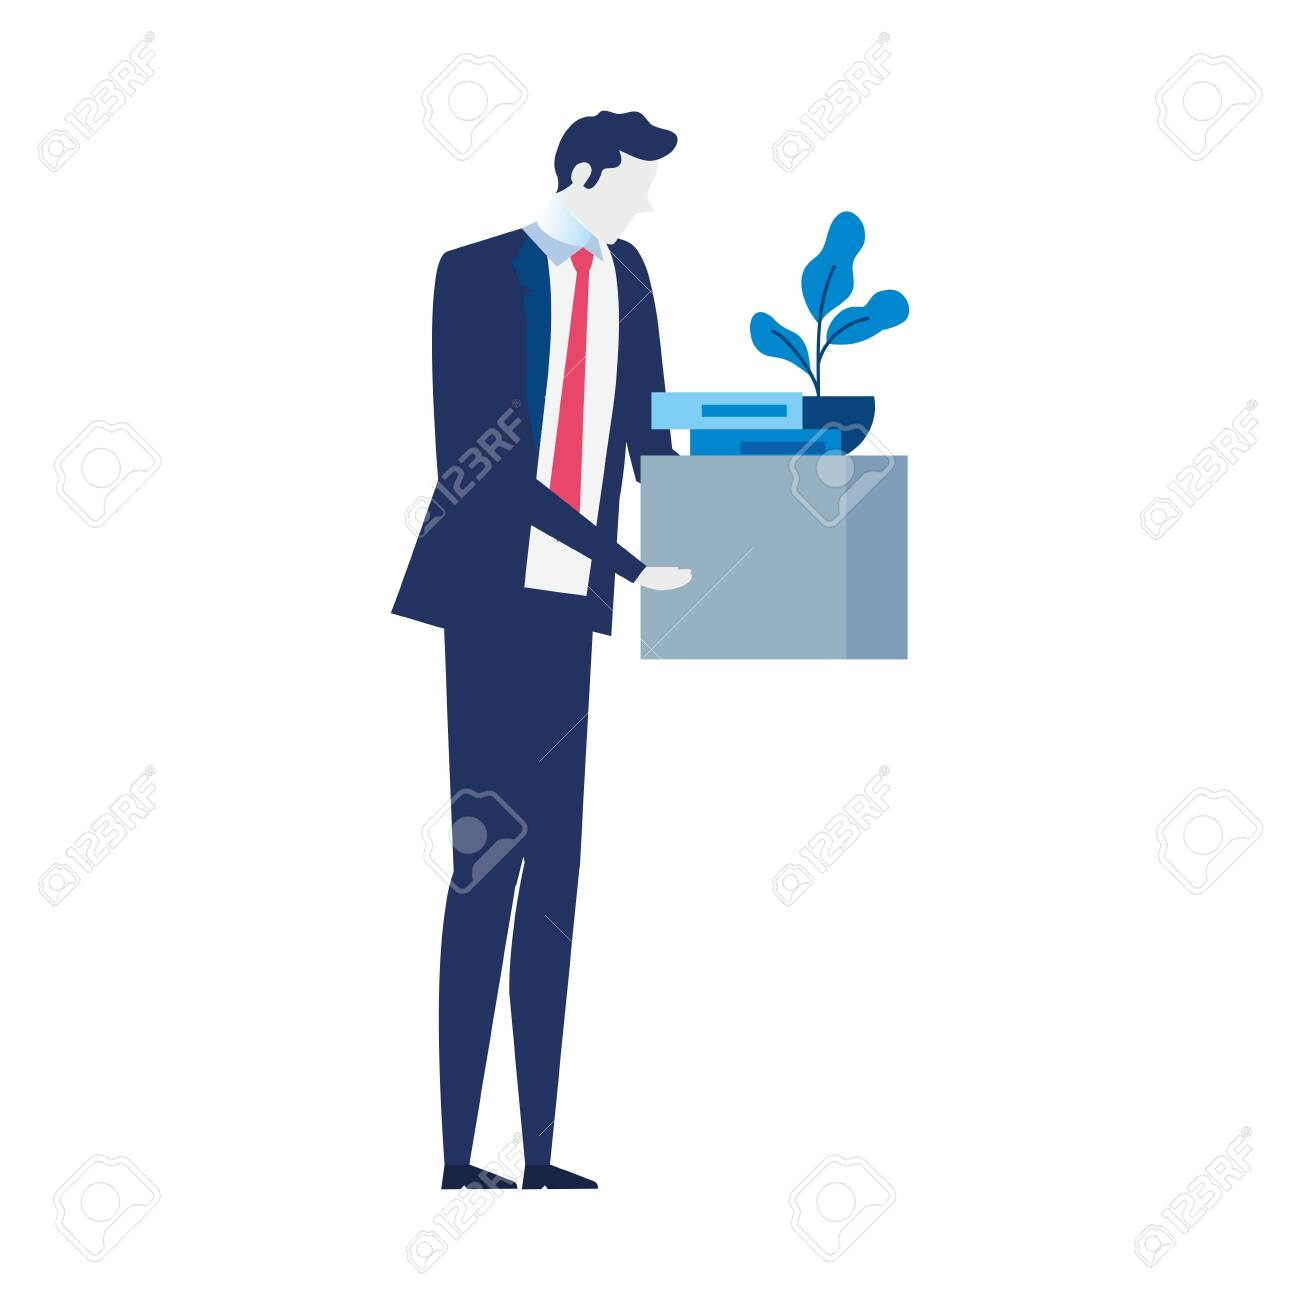 man unemployment concept, company worker holding stuff in box vector illustration design - 148132083